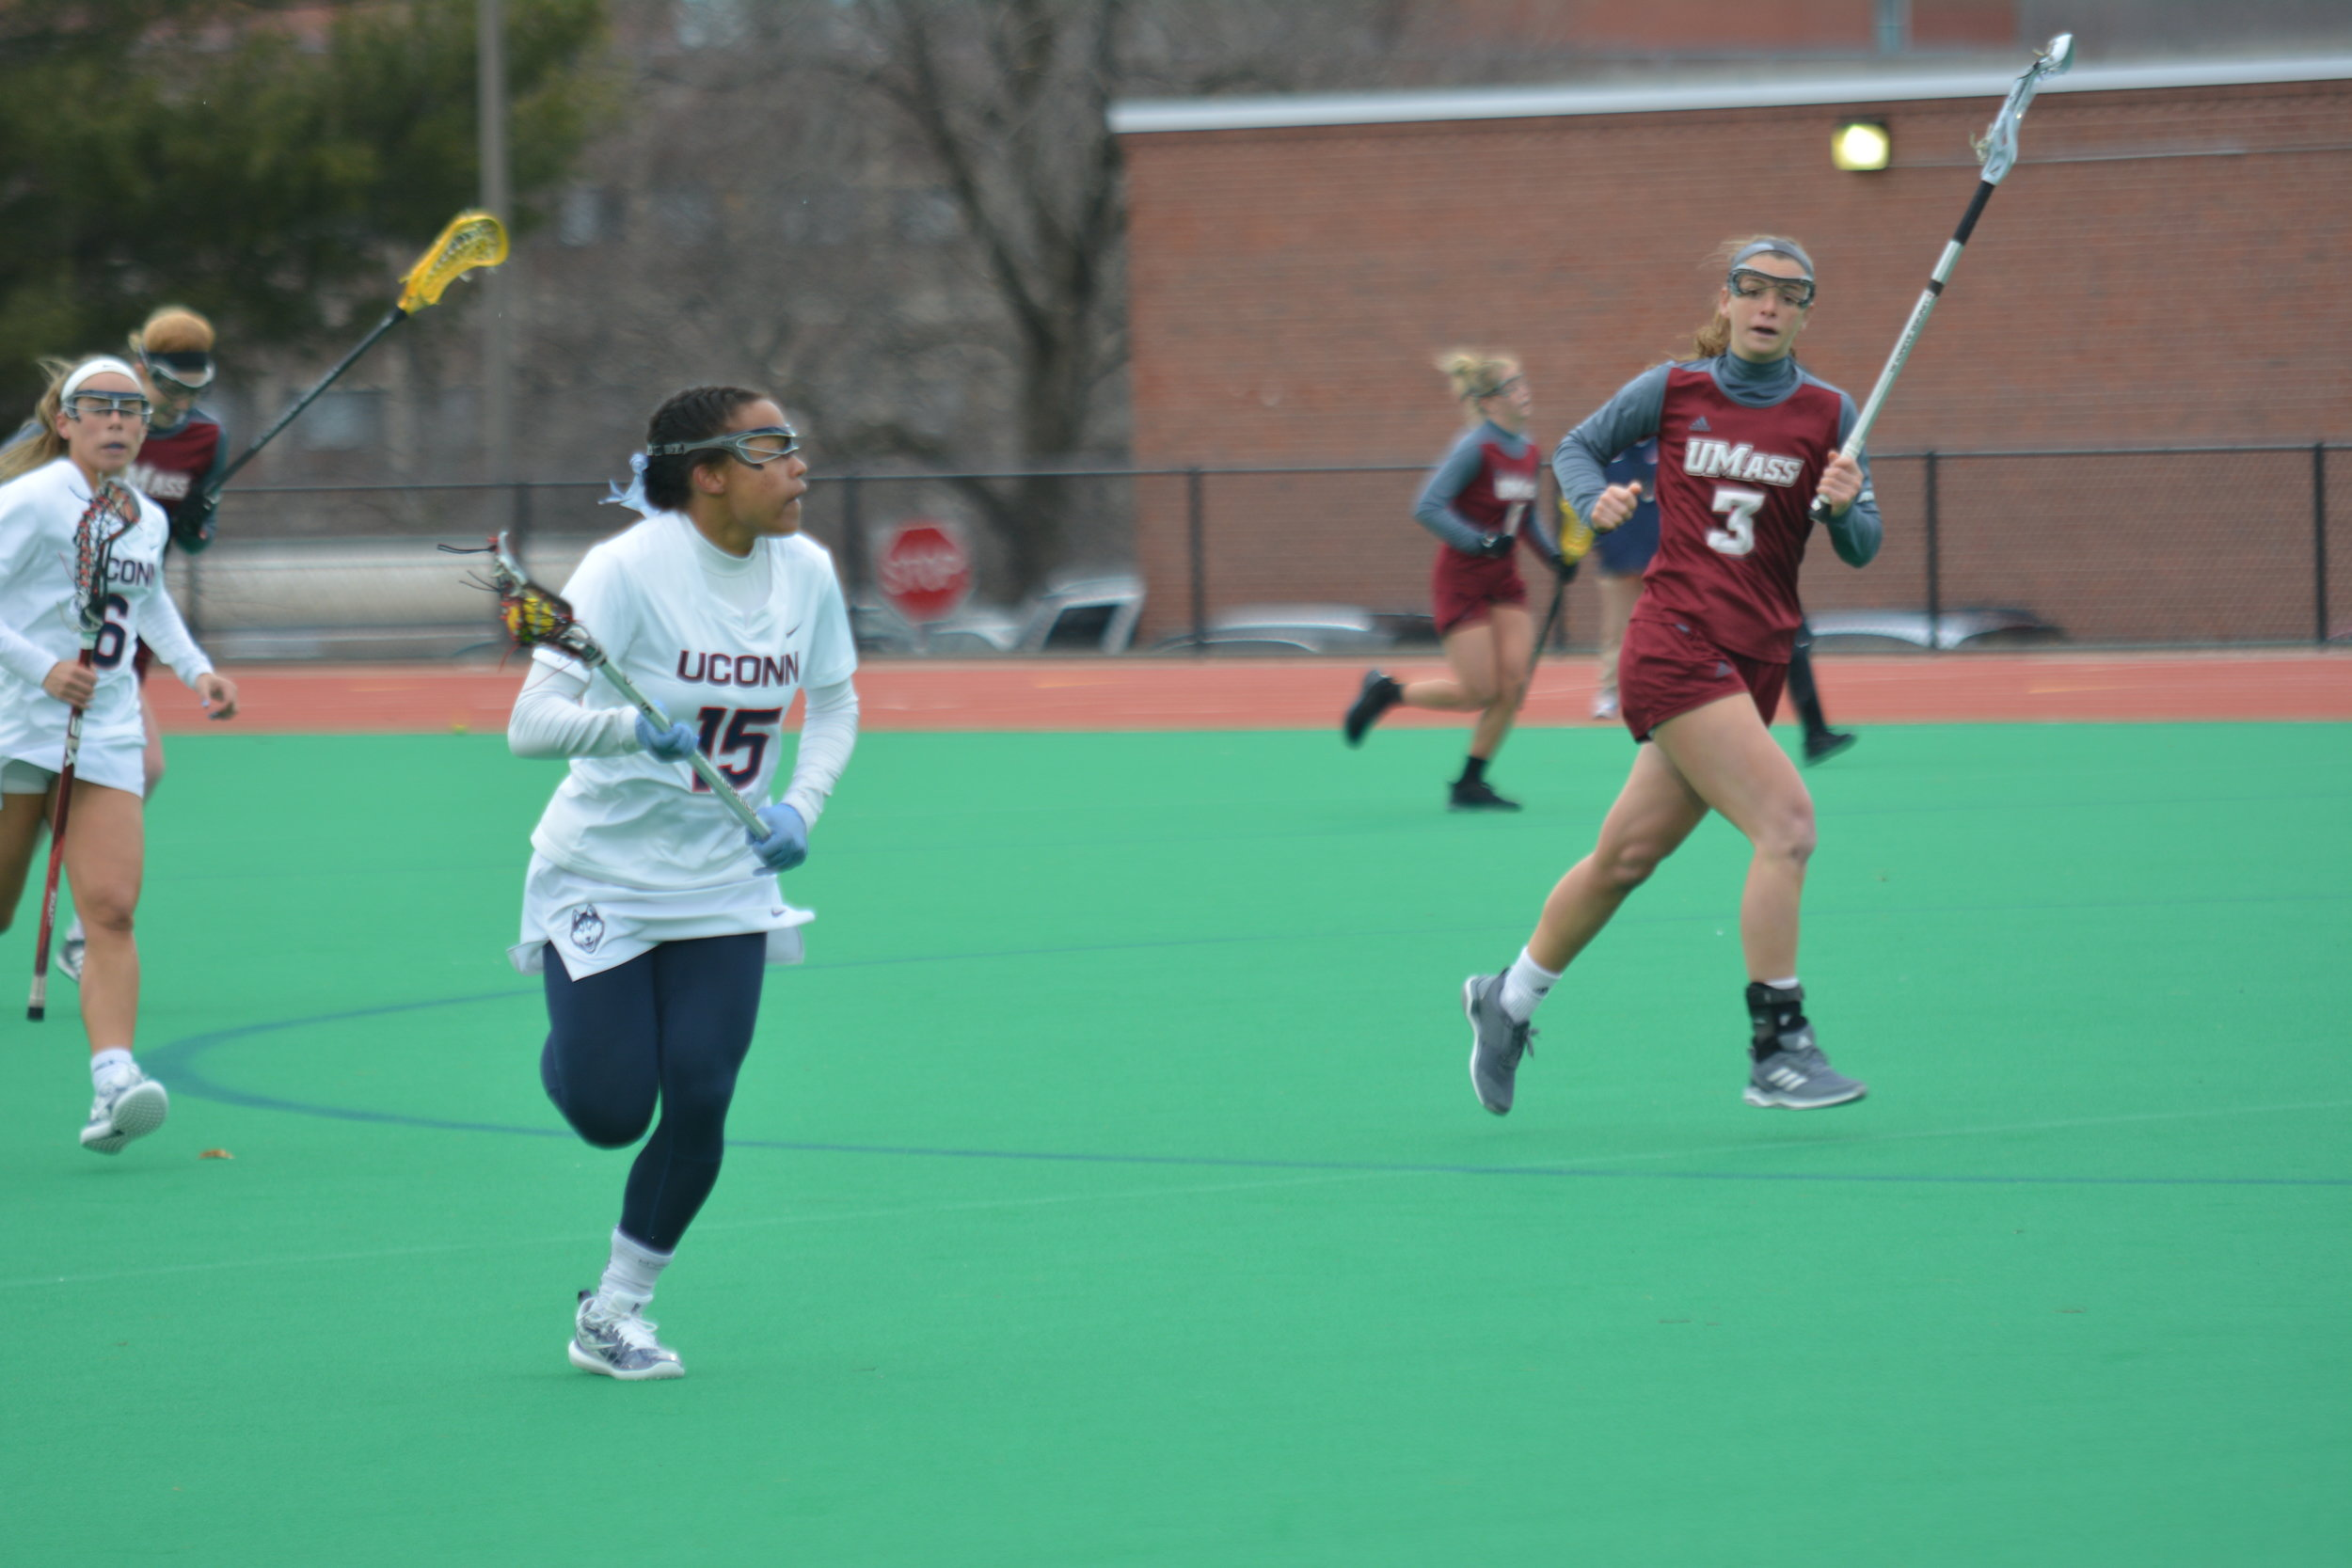 The UConn women's lacrosse team has dropped three straight after a weekend loss to Delaware. (File photo/The Daily Campus)